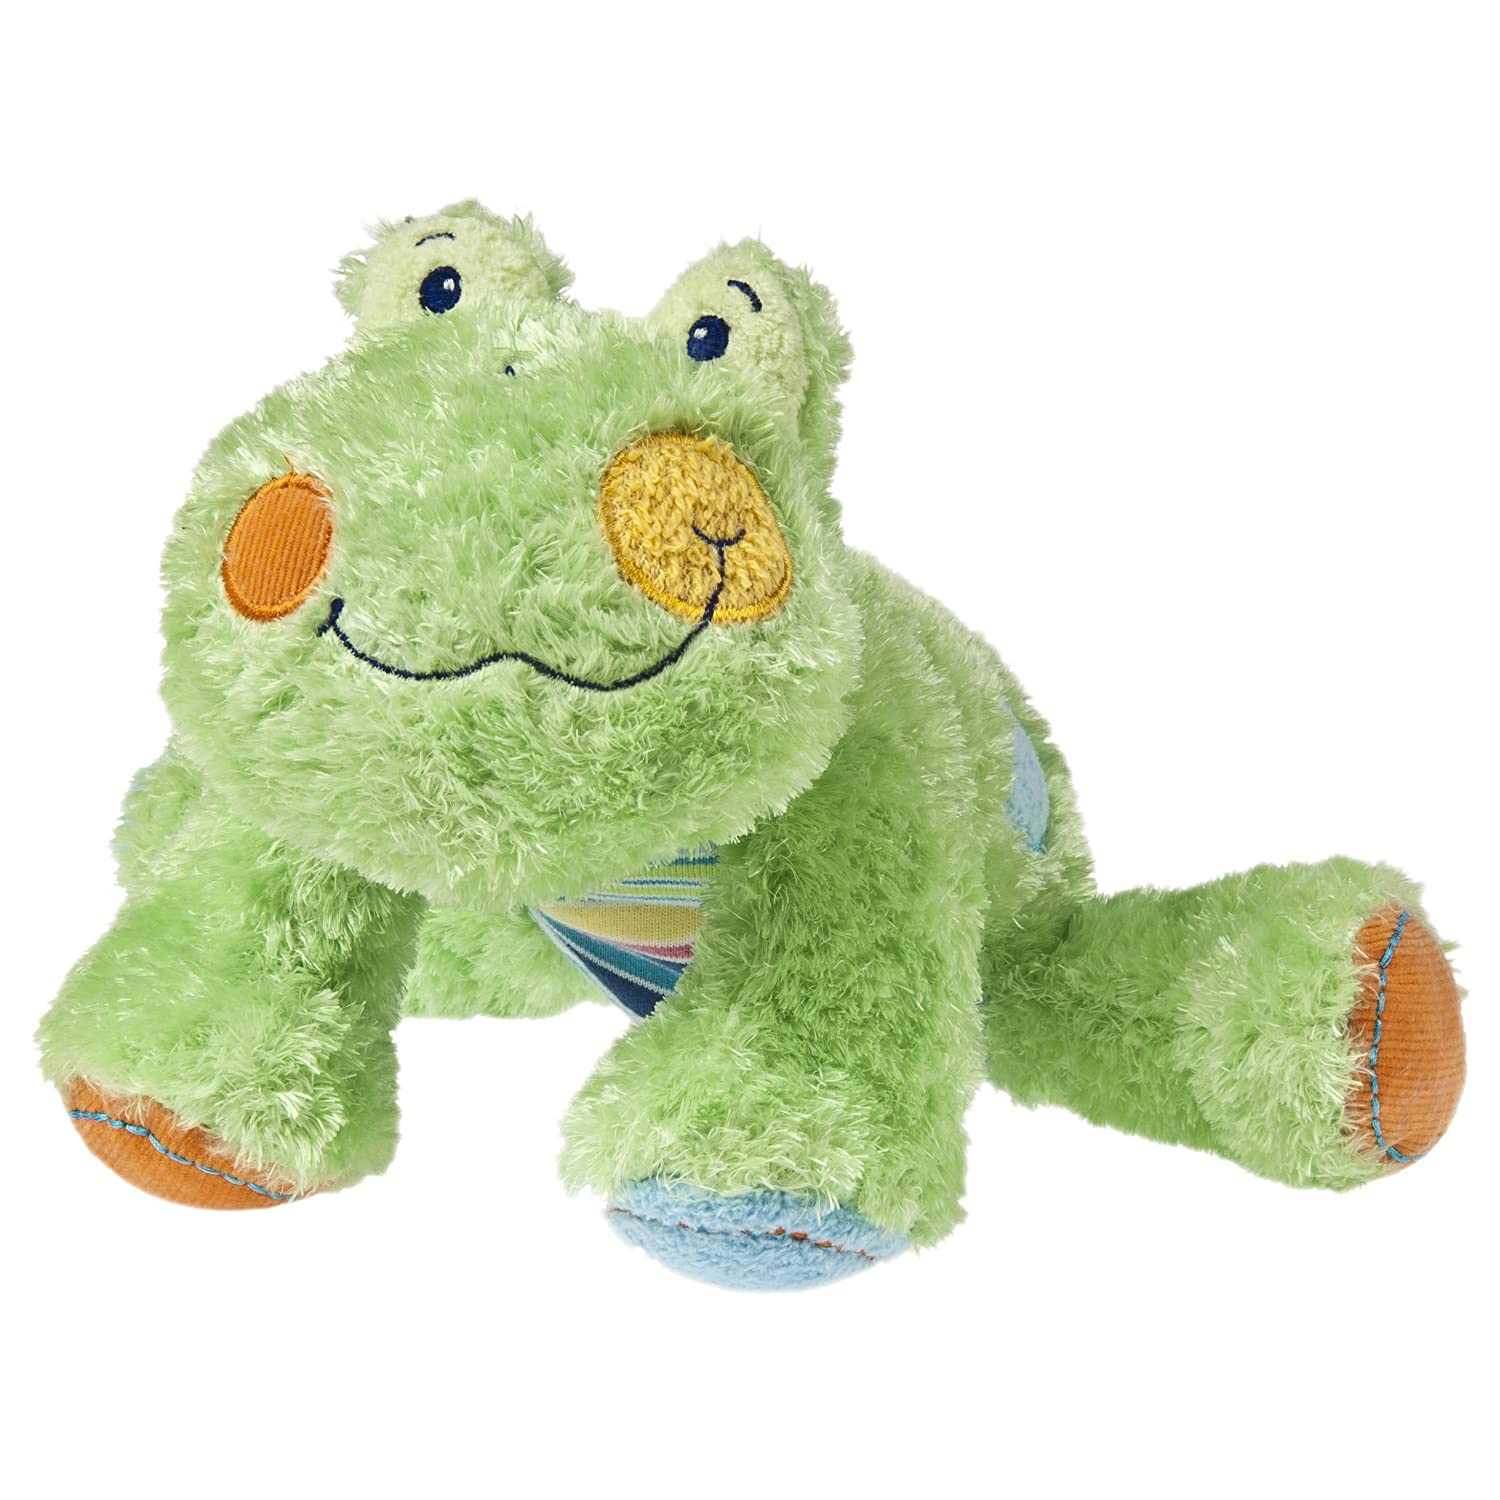 Mary Meyer Cheery Cheeks Lil' Happity Frog 7